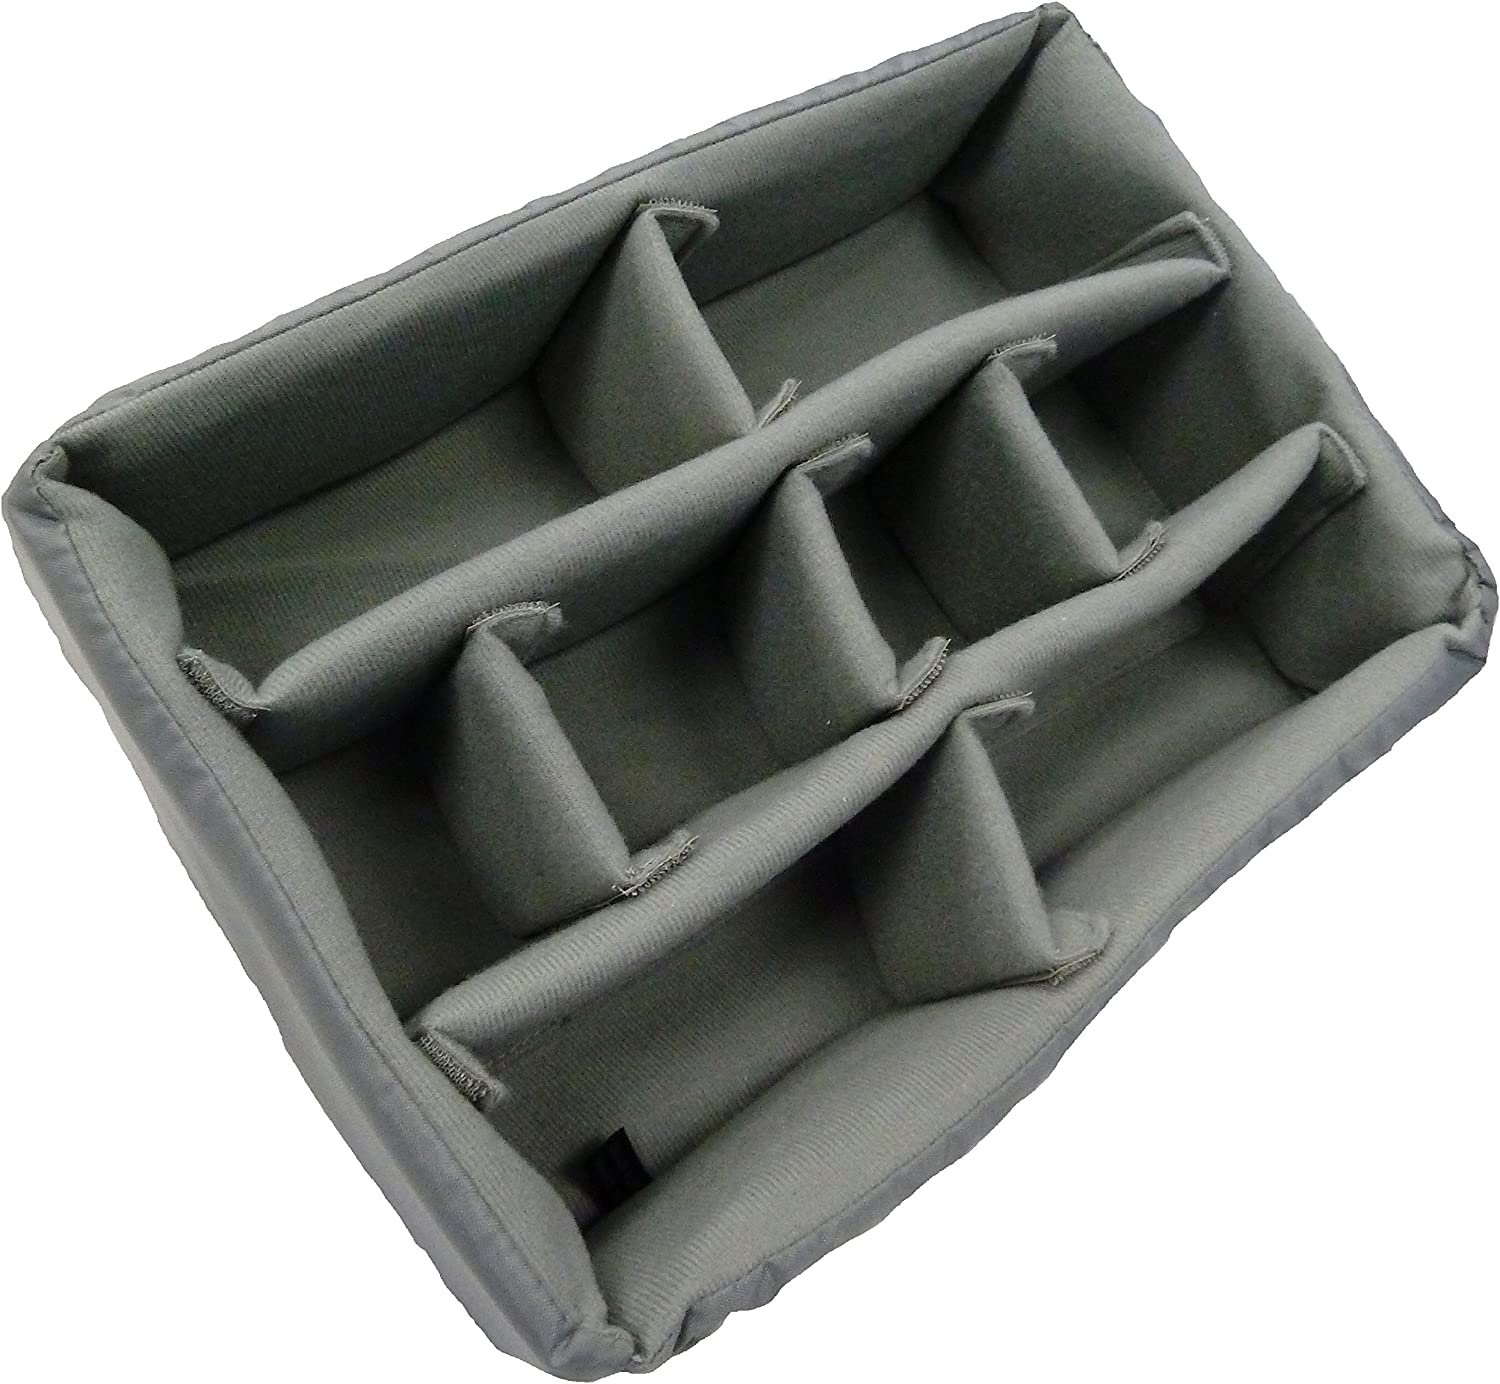 Dividers and lid Foam. CVPKG Grey Padded Divider Set to fit Pelican 1500